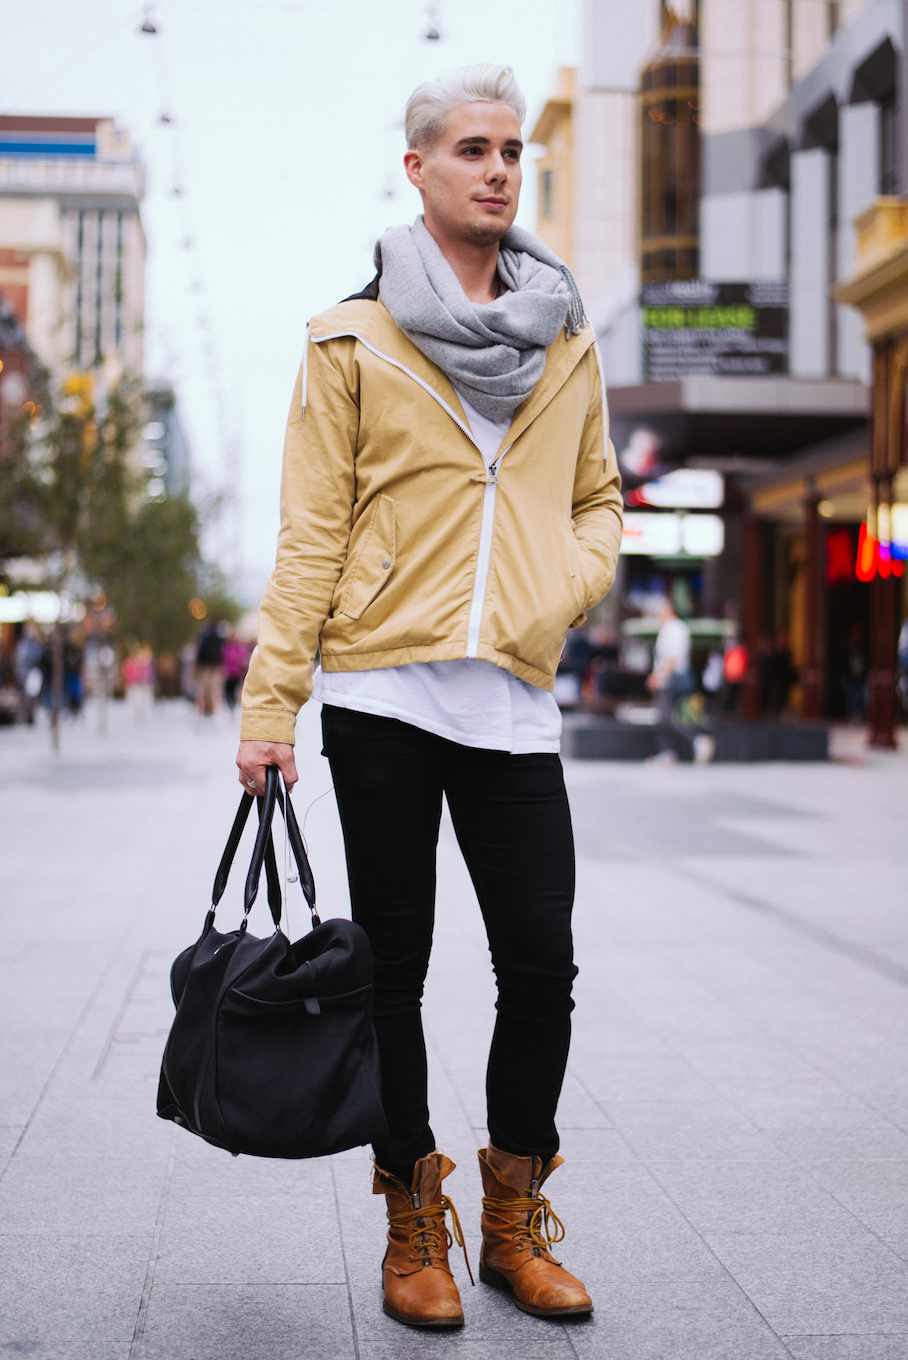 SA: Shaun Critchley, Stylist, Rundle Mall.